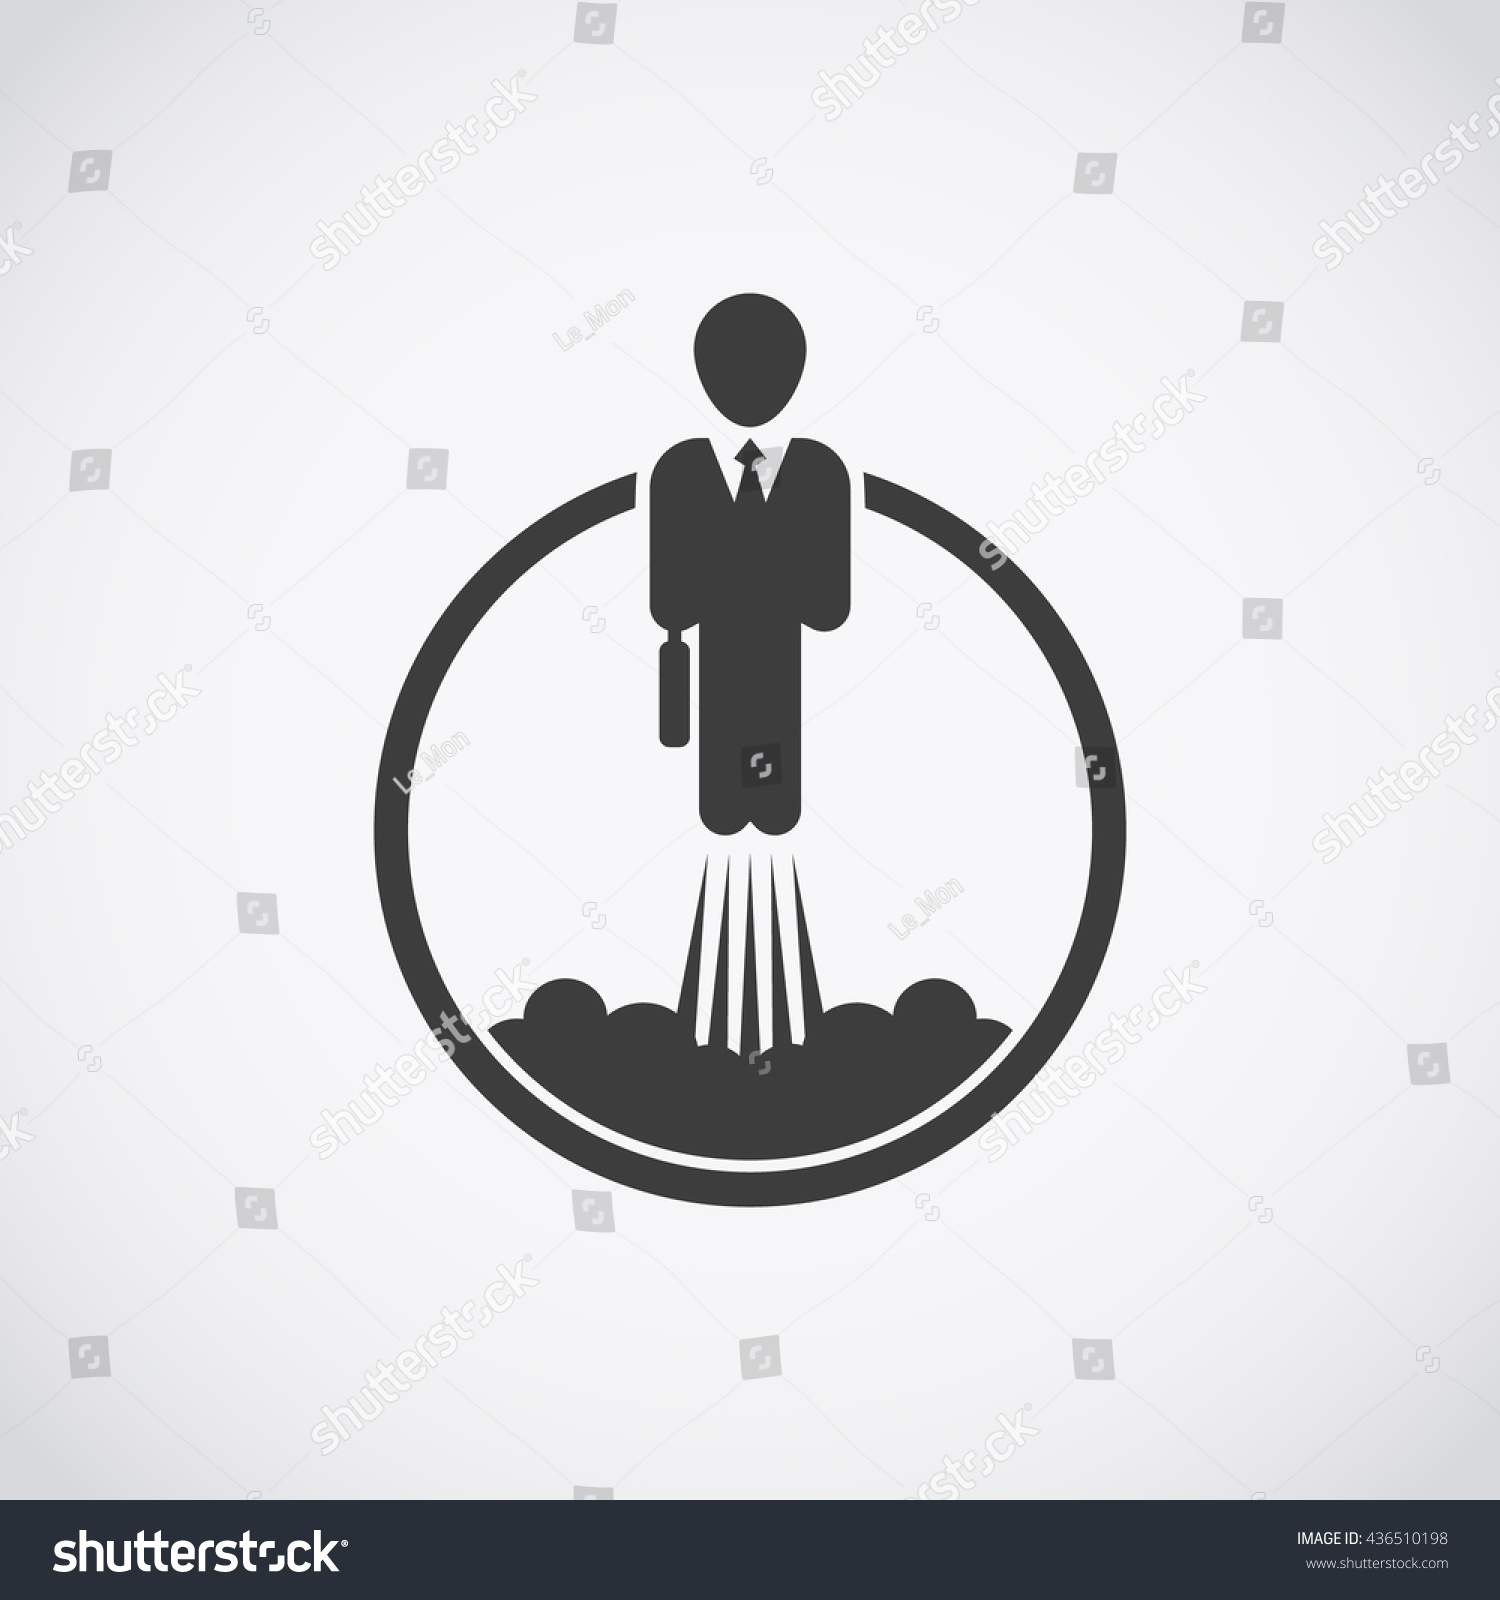 career development icon businessman takes off stock vector career development icon businessman takes off like a rocket